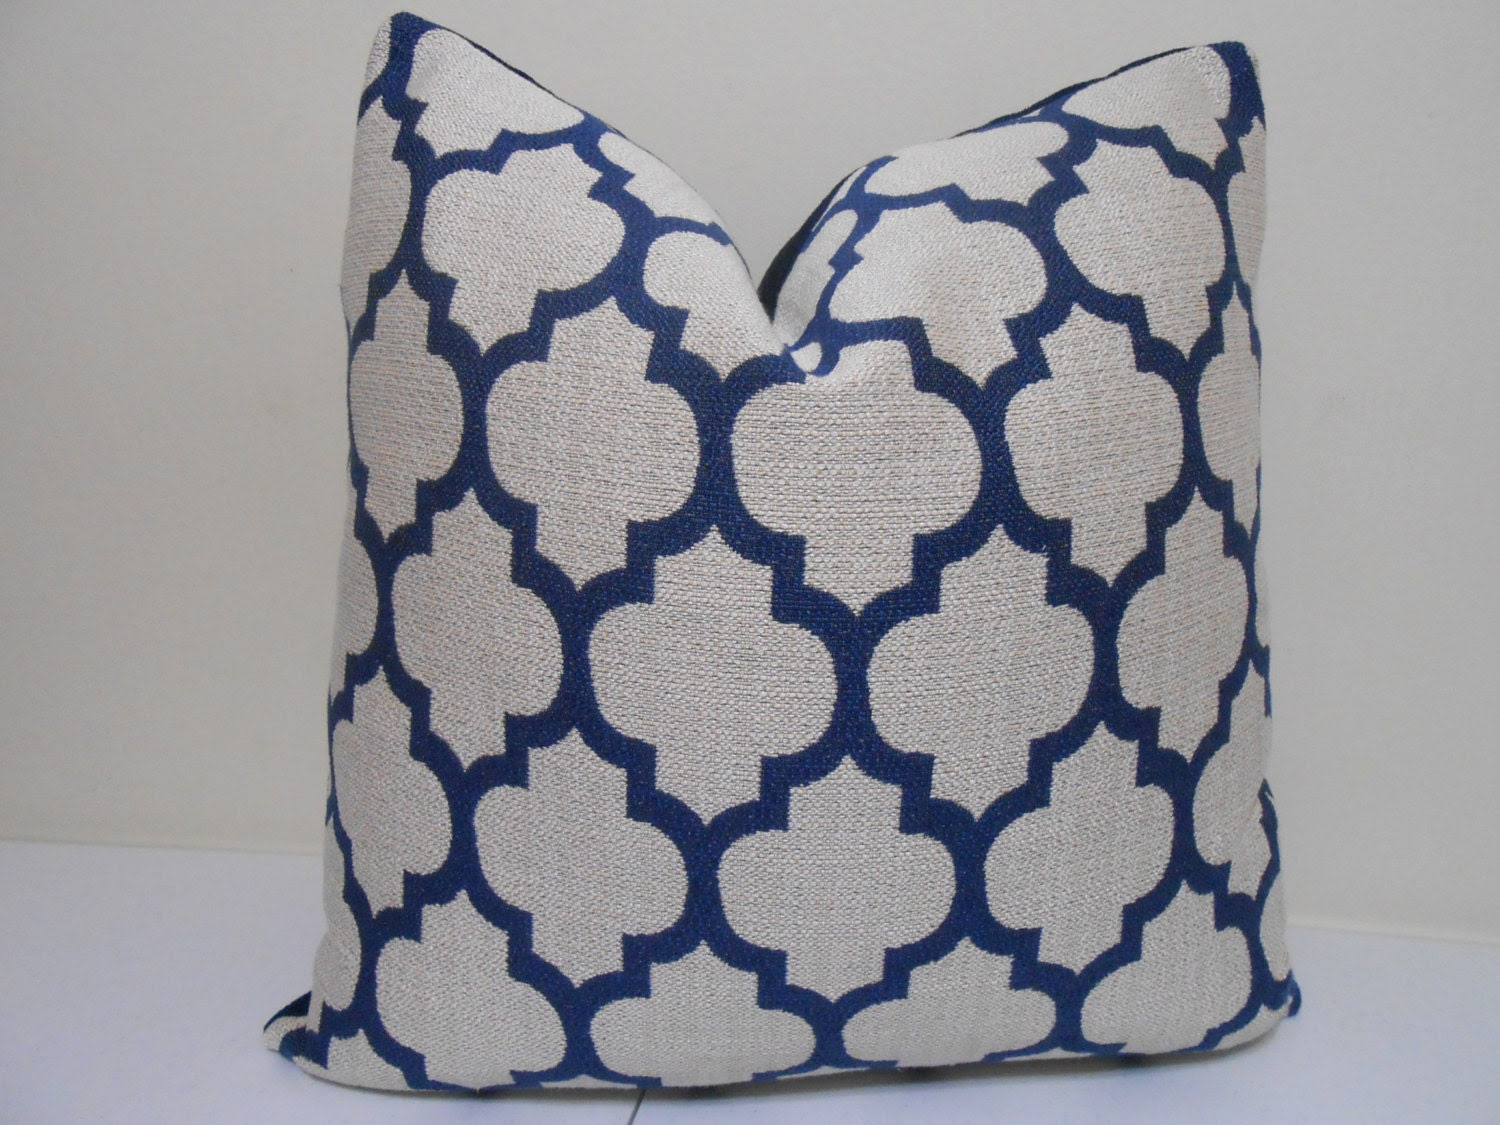 Navy Blue Pillow cover- Robert  Allen, quaterfoil pillow - Casablanca Pillow  20 x 20 inch -